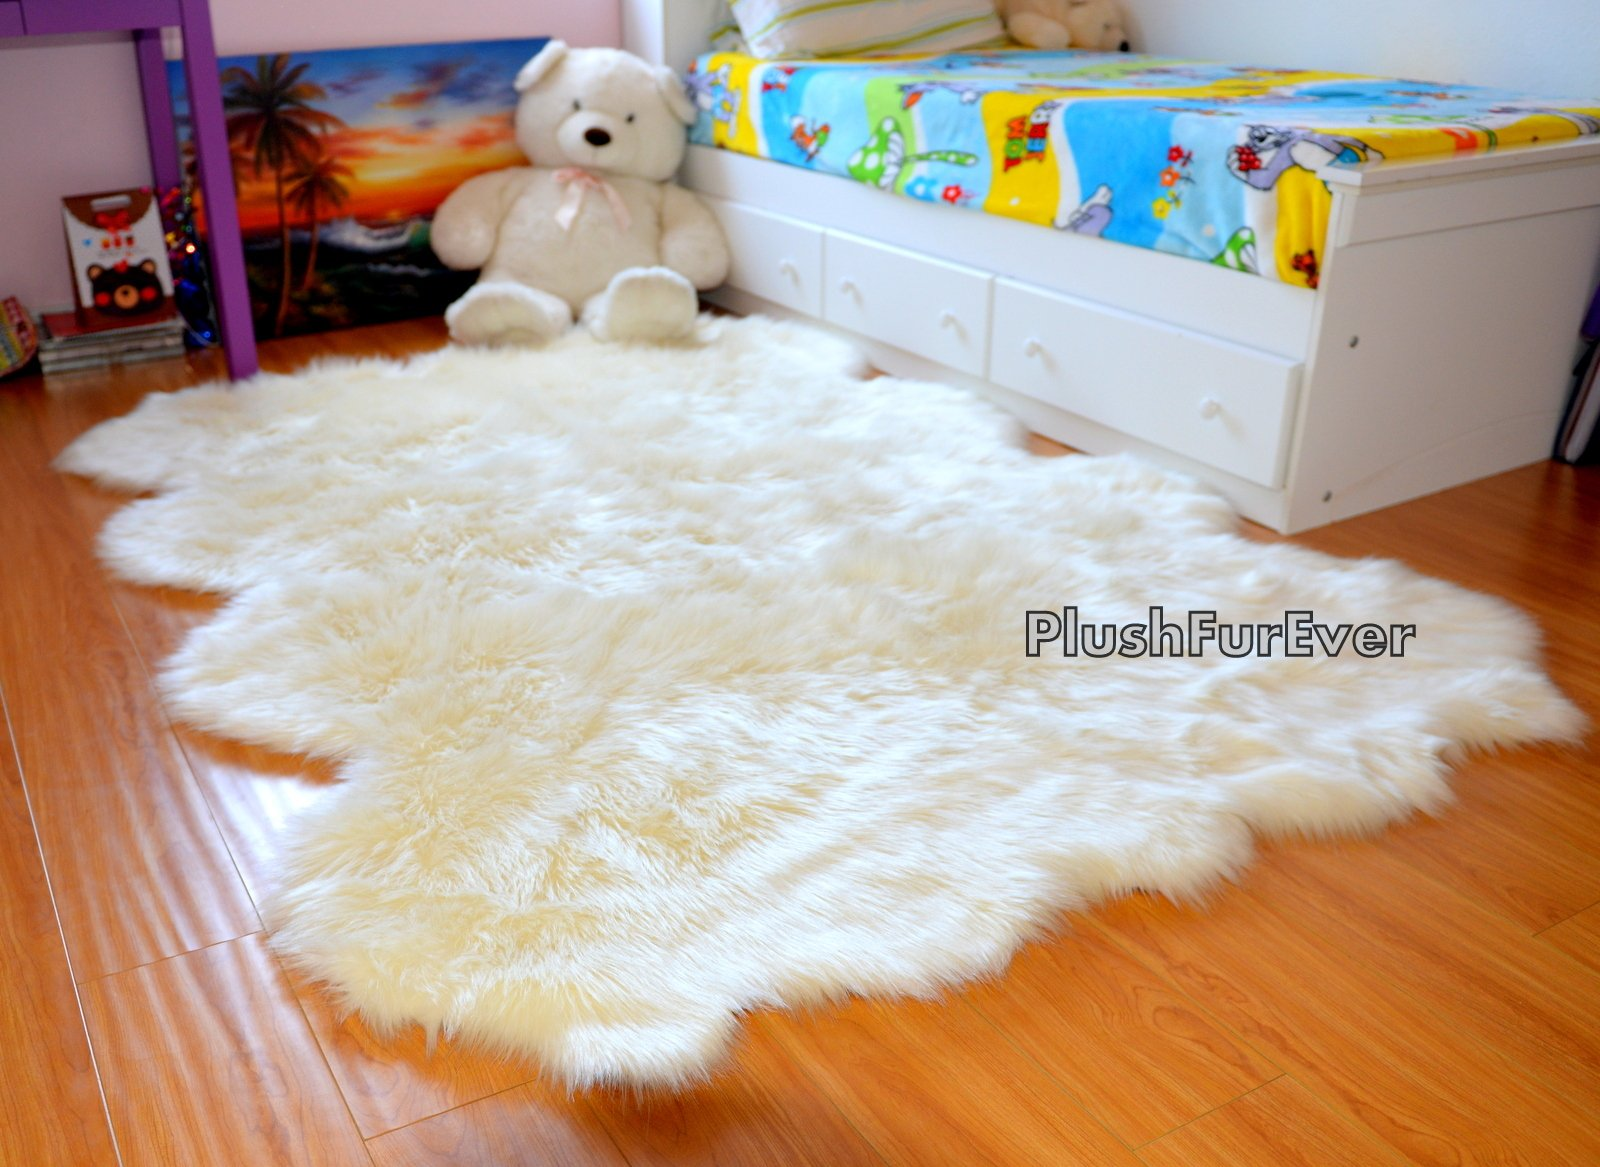 SC Love Collections Plush Sheepskin Octo Eight Pelts Warm White Shaggy Luxurious Home Accents Decor (5' x 7' feet) by Fur Accents (Image #1)